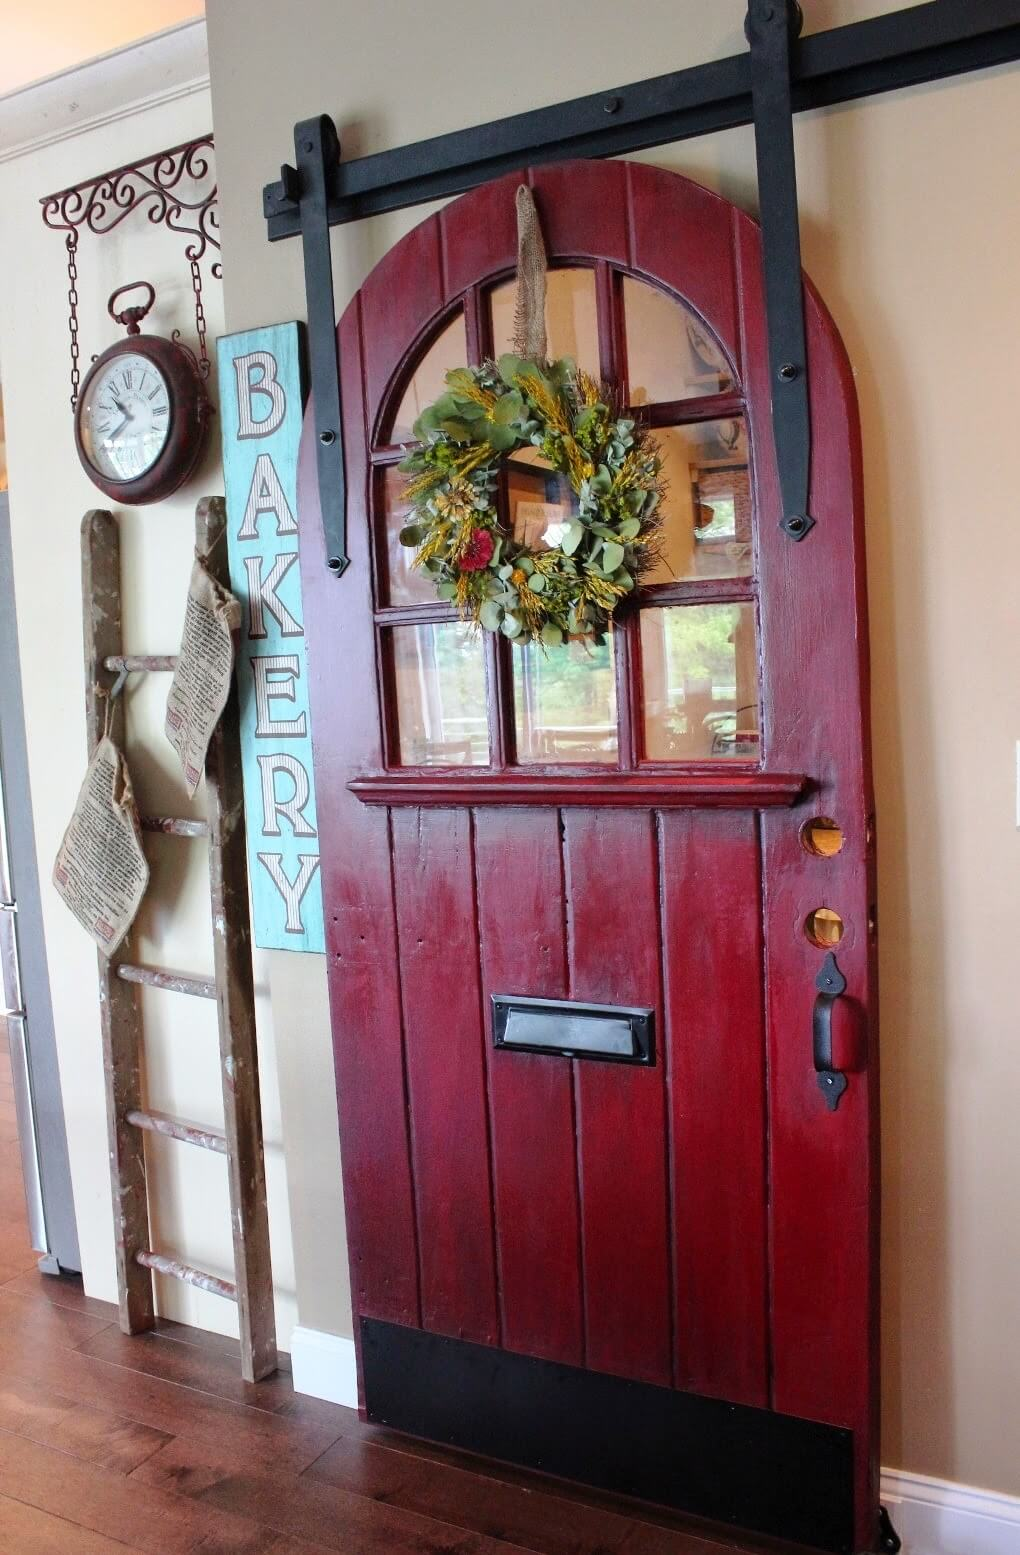 New Takes On Old Doors 21 Ideas How to Repurpose Old Doors & New Takes On Old Doors: 21 Ideas How to Repurpose Old Doors - Style ...